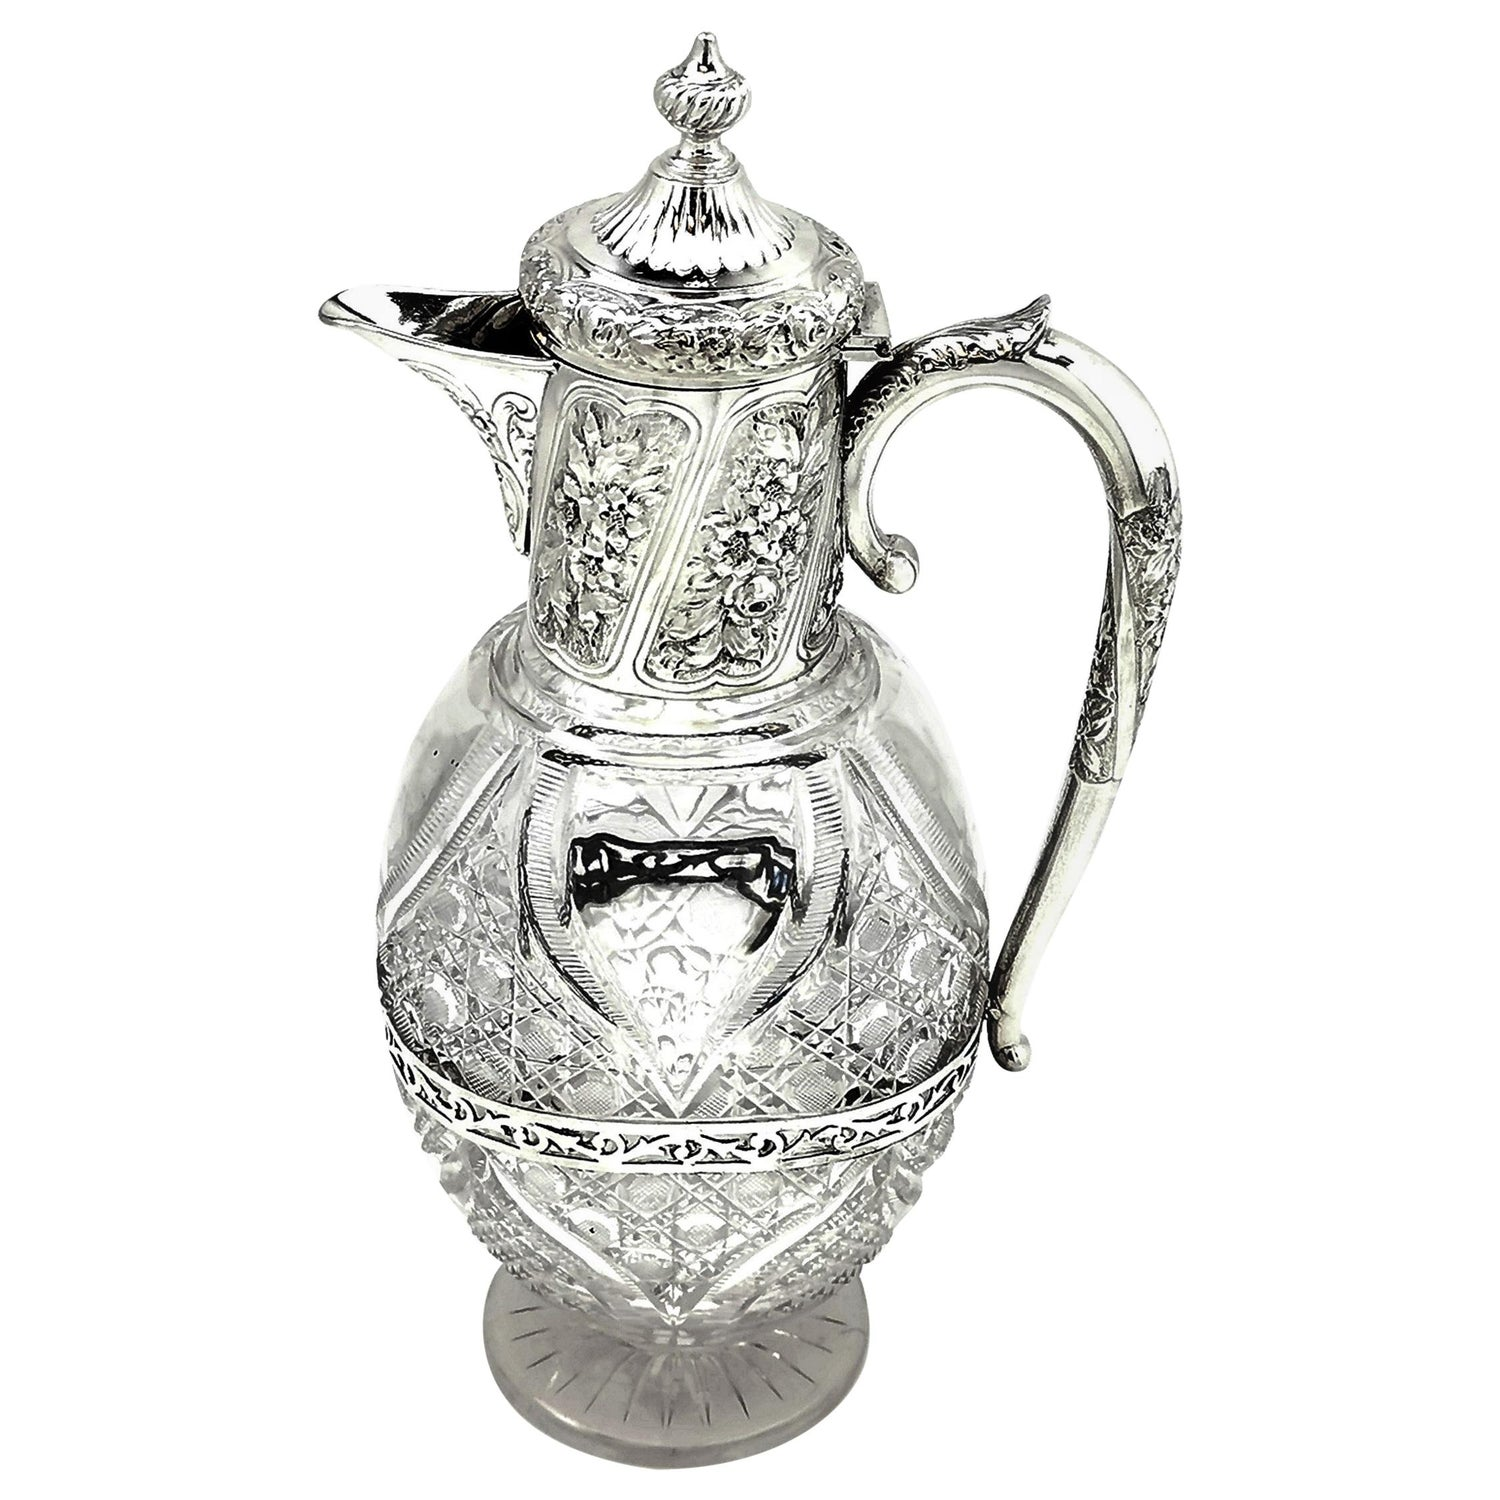 Antique Victorian Silver and Cut Glass Claret Jug / Wine Decanter Ewer, 1900